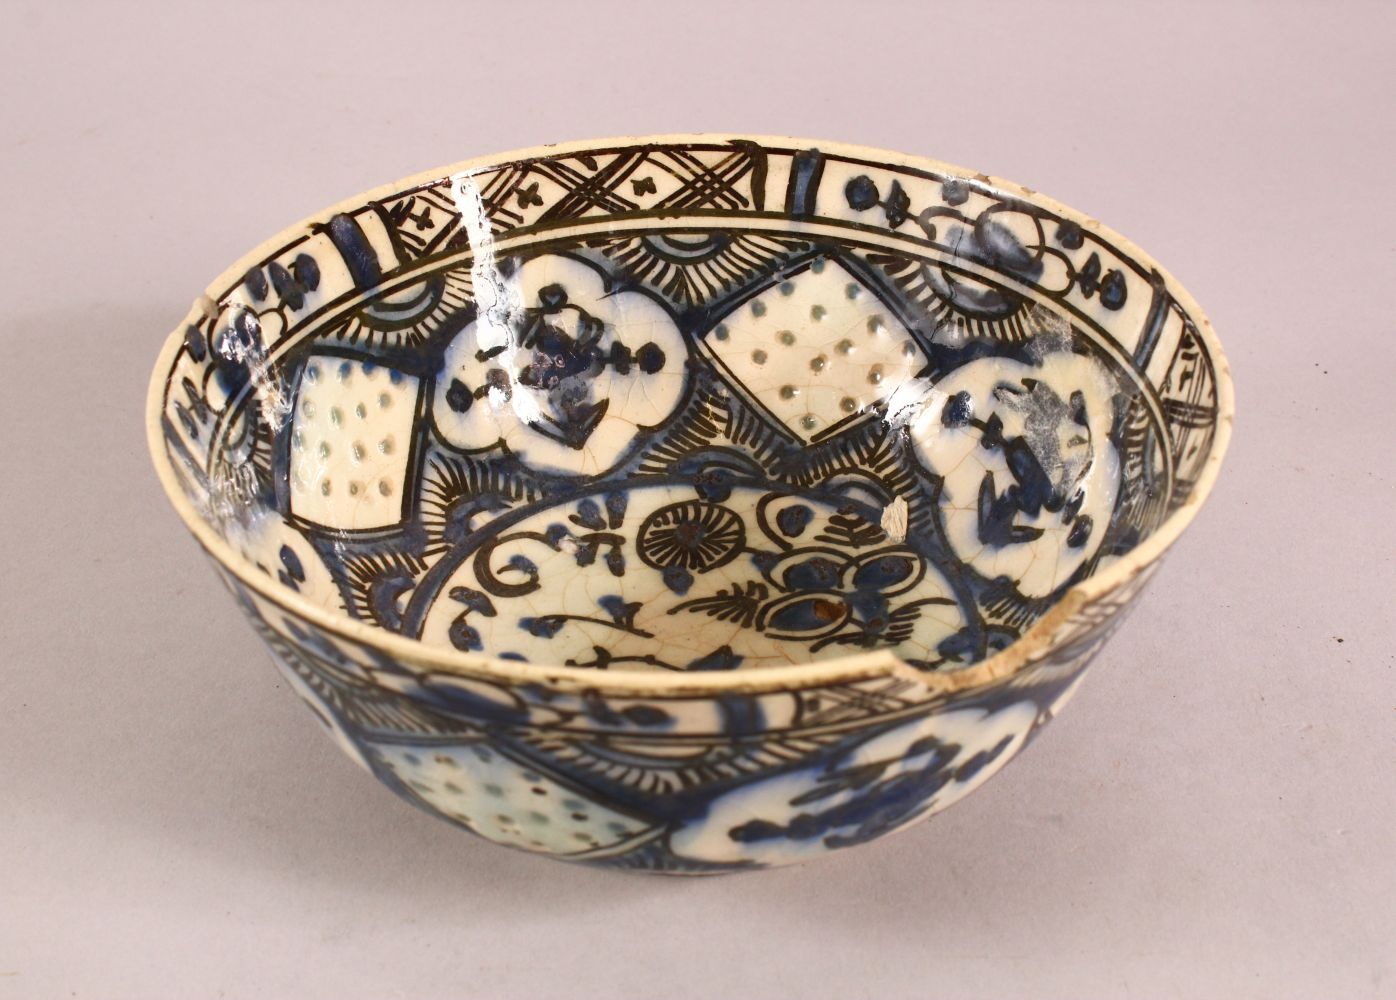 A 19TH CENTURY OR EARLIER TURKISH POTTERY BOWL, with floral motif decorations, (af) 18.5cm